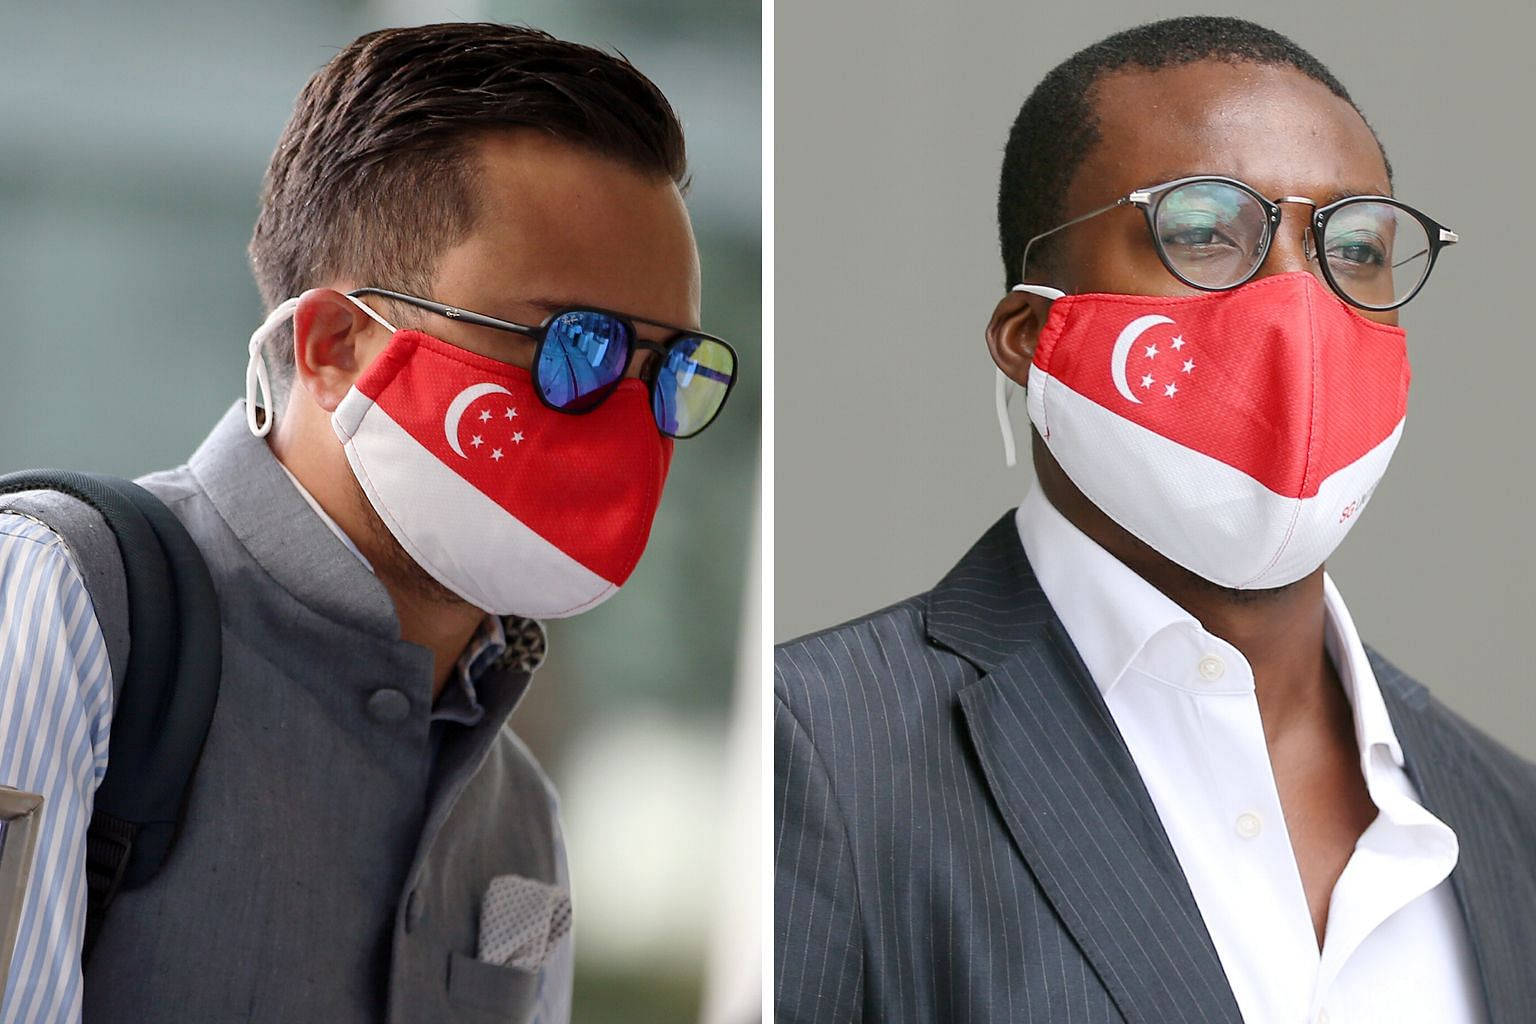 Alfred Jon Veloso Waring (left) was fined $8,000, while Olagunju Daniel Olalekan Olasunkanmi was fined $8,500. The two British nationals flouted safety rules by gathering with others at Robertson Quay in May. ST PHOTOS: WONG KWAI CHOW